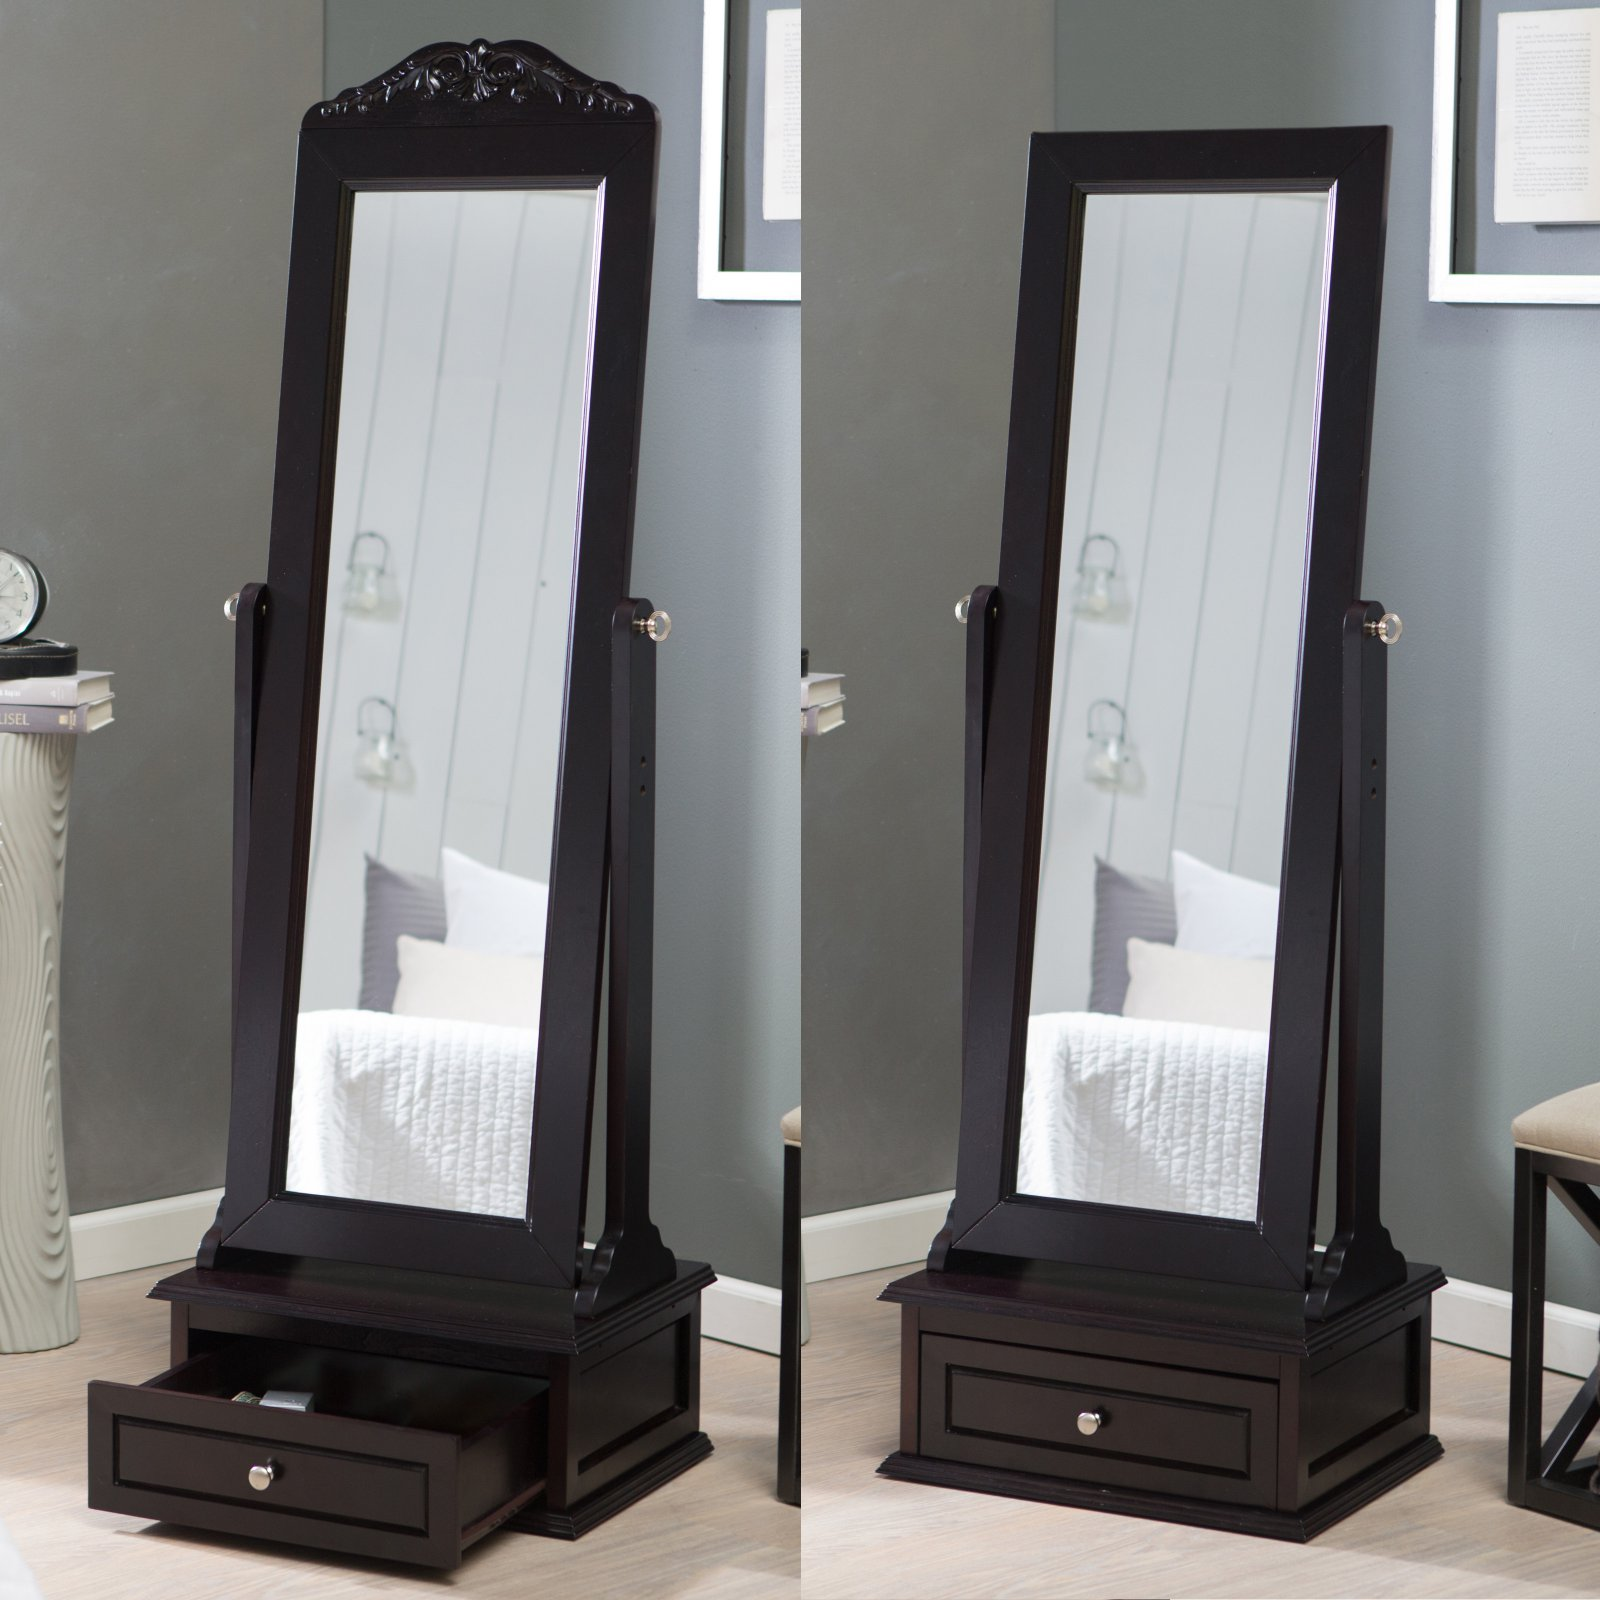 Belham Living Removable Decorative Top Cheval Mirror - Espresso - 21.5W x 60H in.